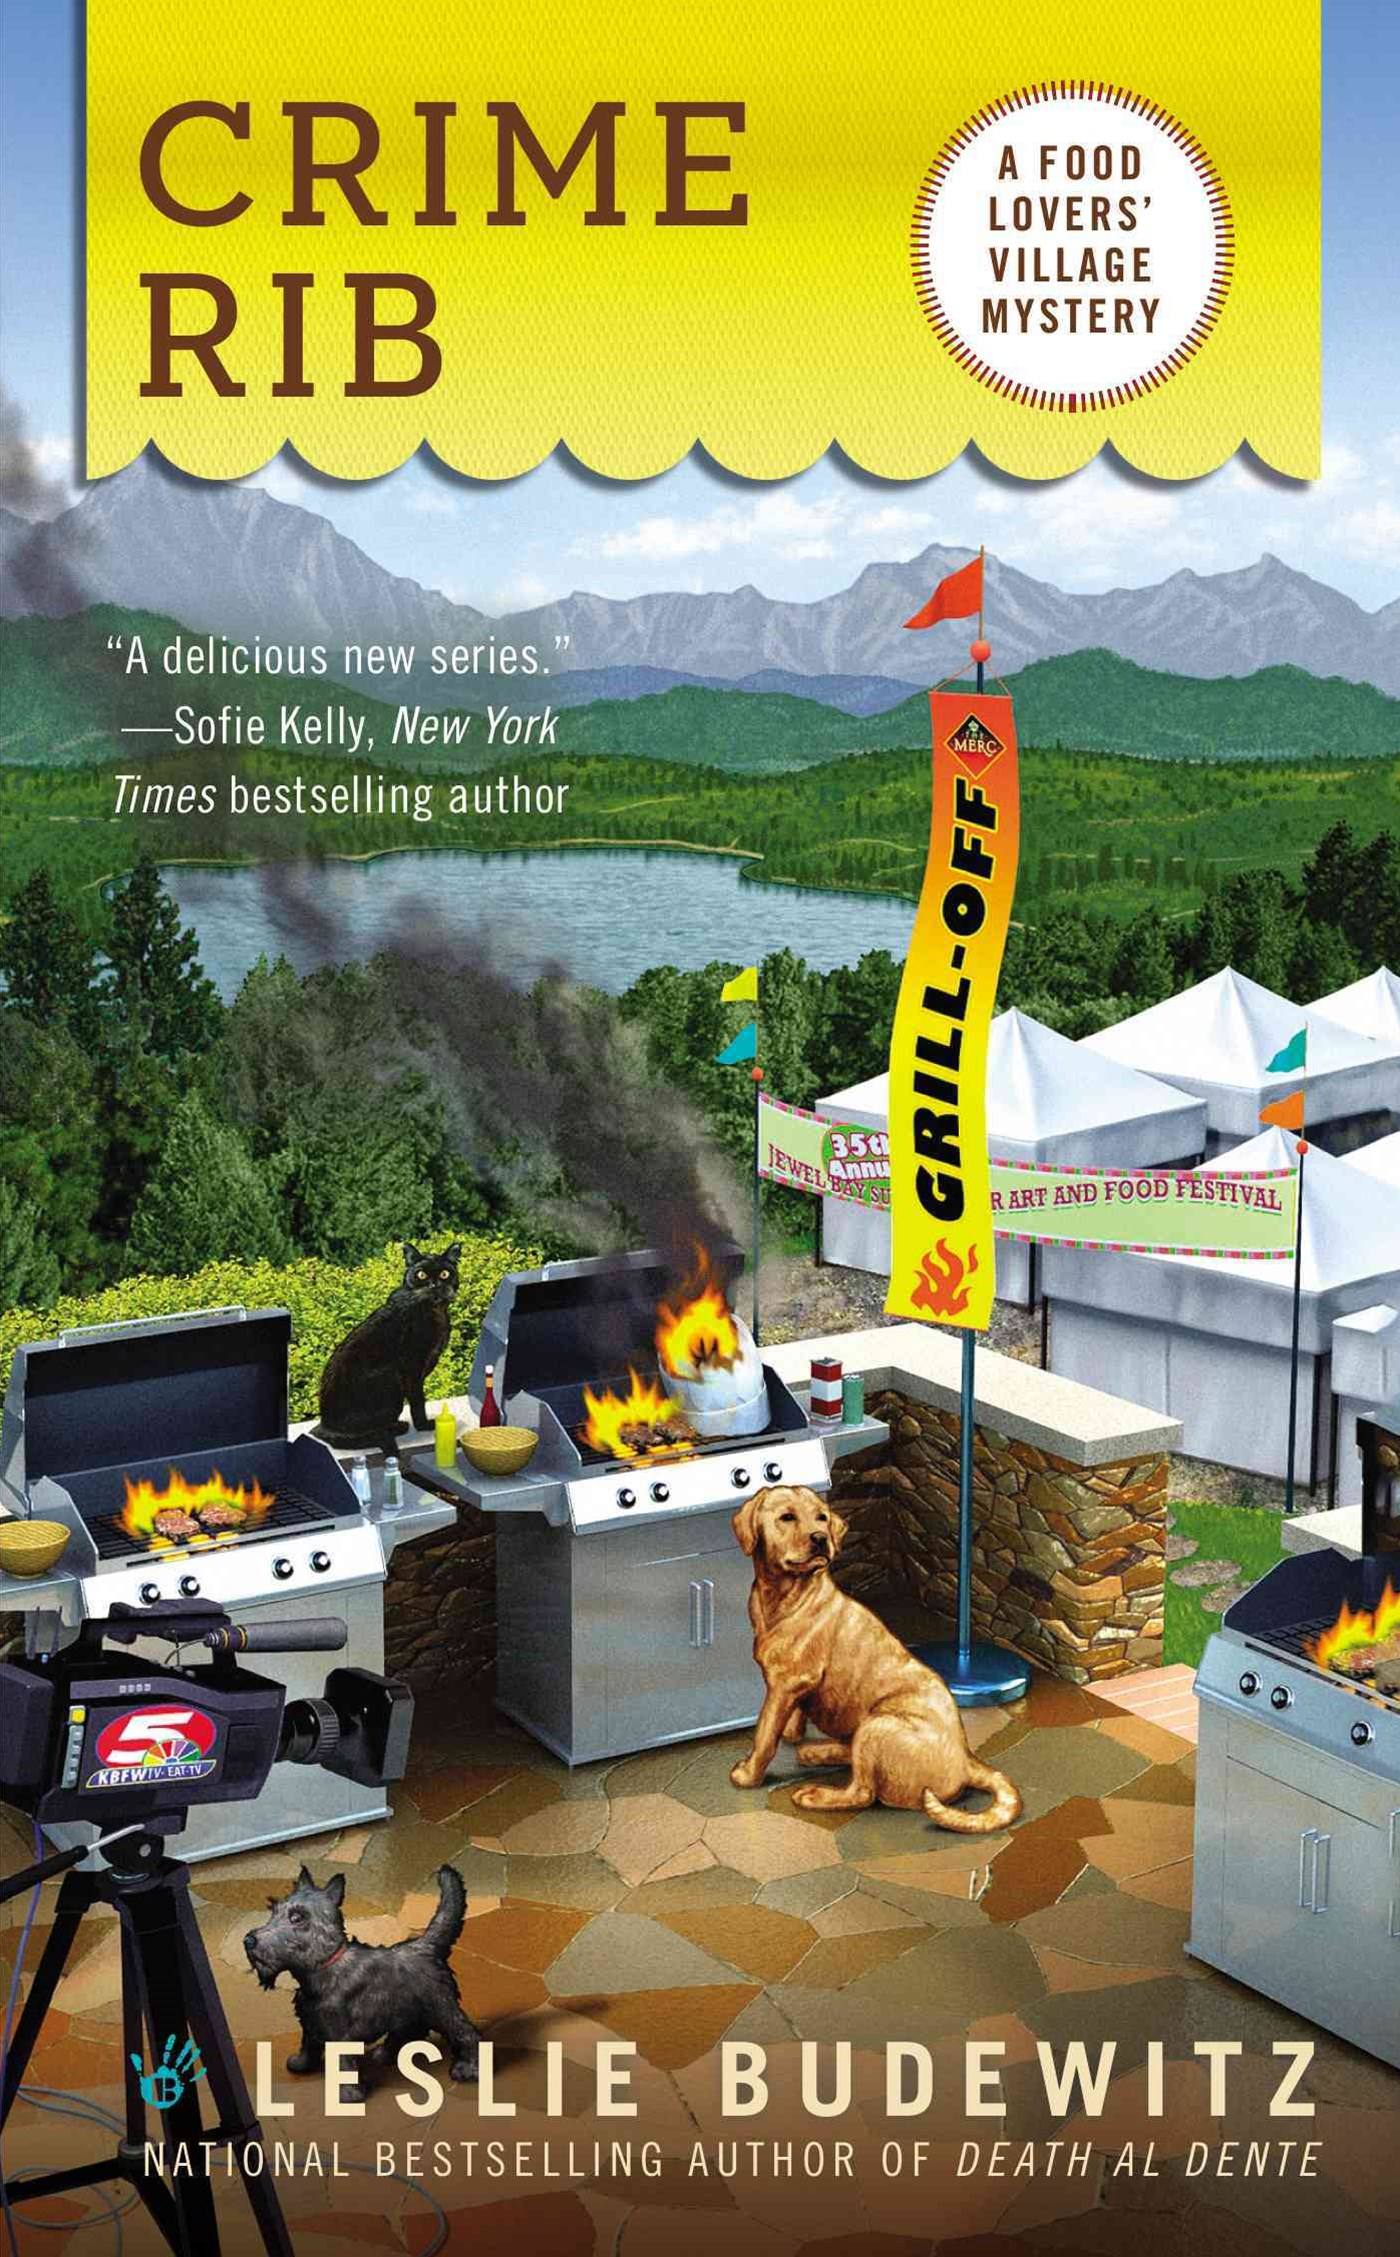 Crime Rib: A Food Lover's Village Mystery Book 2